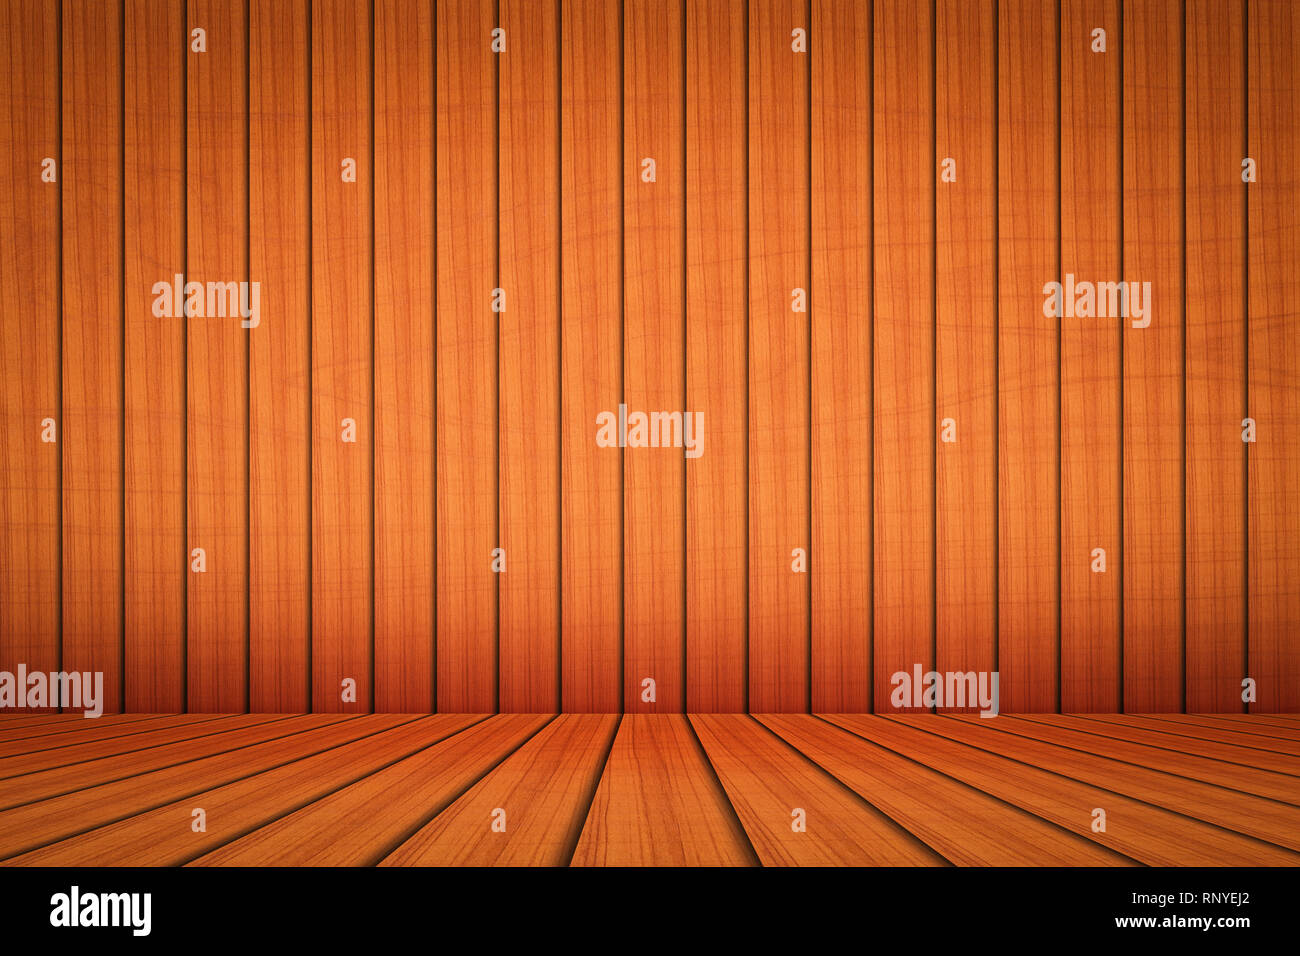 Natural wooden table texture background - Stock Image